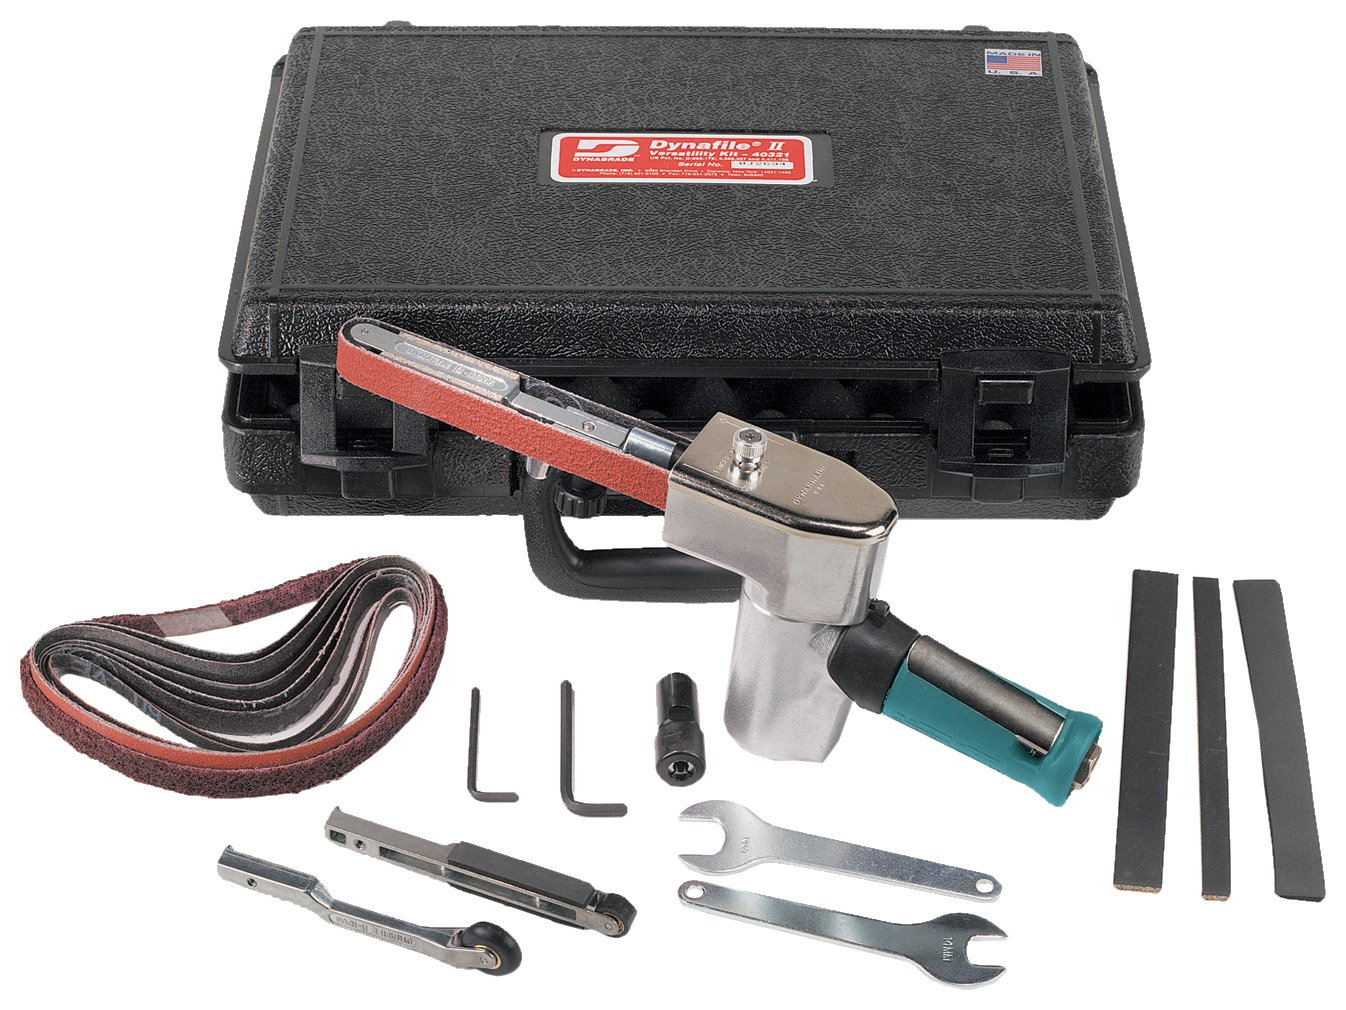 Dynabrade 40321 Dynafile II Abrasive Belt Tool Versatility Kit, For 1/4-Inch - 3/4-Inch Width x 18-Inch Length Belts